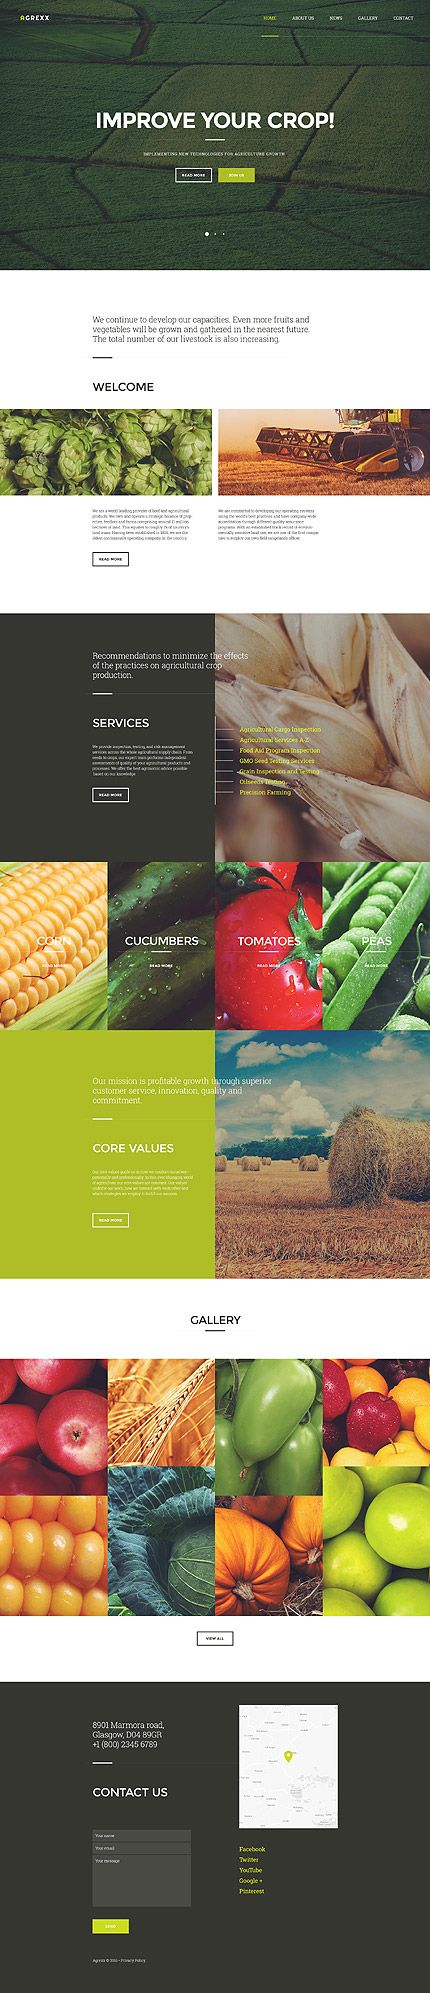 Modern clean website design layout about crop optimizing with beautiful photography